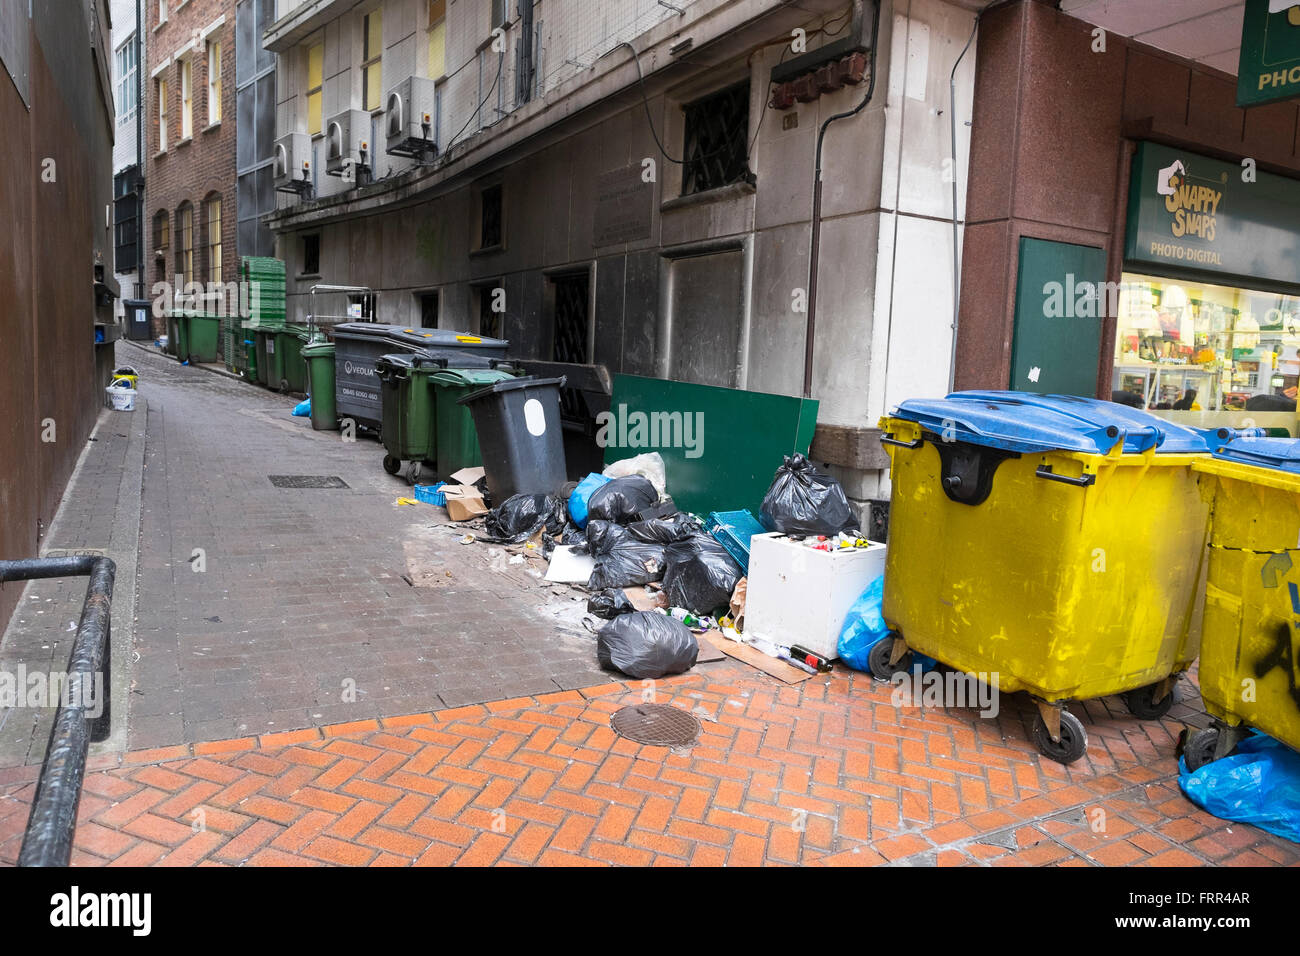 Rubbish bins and litter in a side street in Birmingham city centre, West Midlands, England, UK - Stock Image